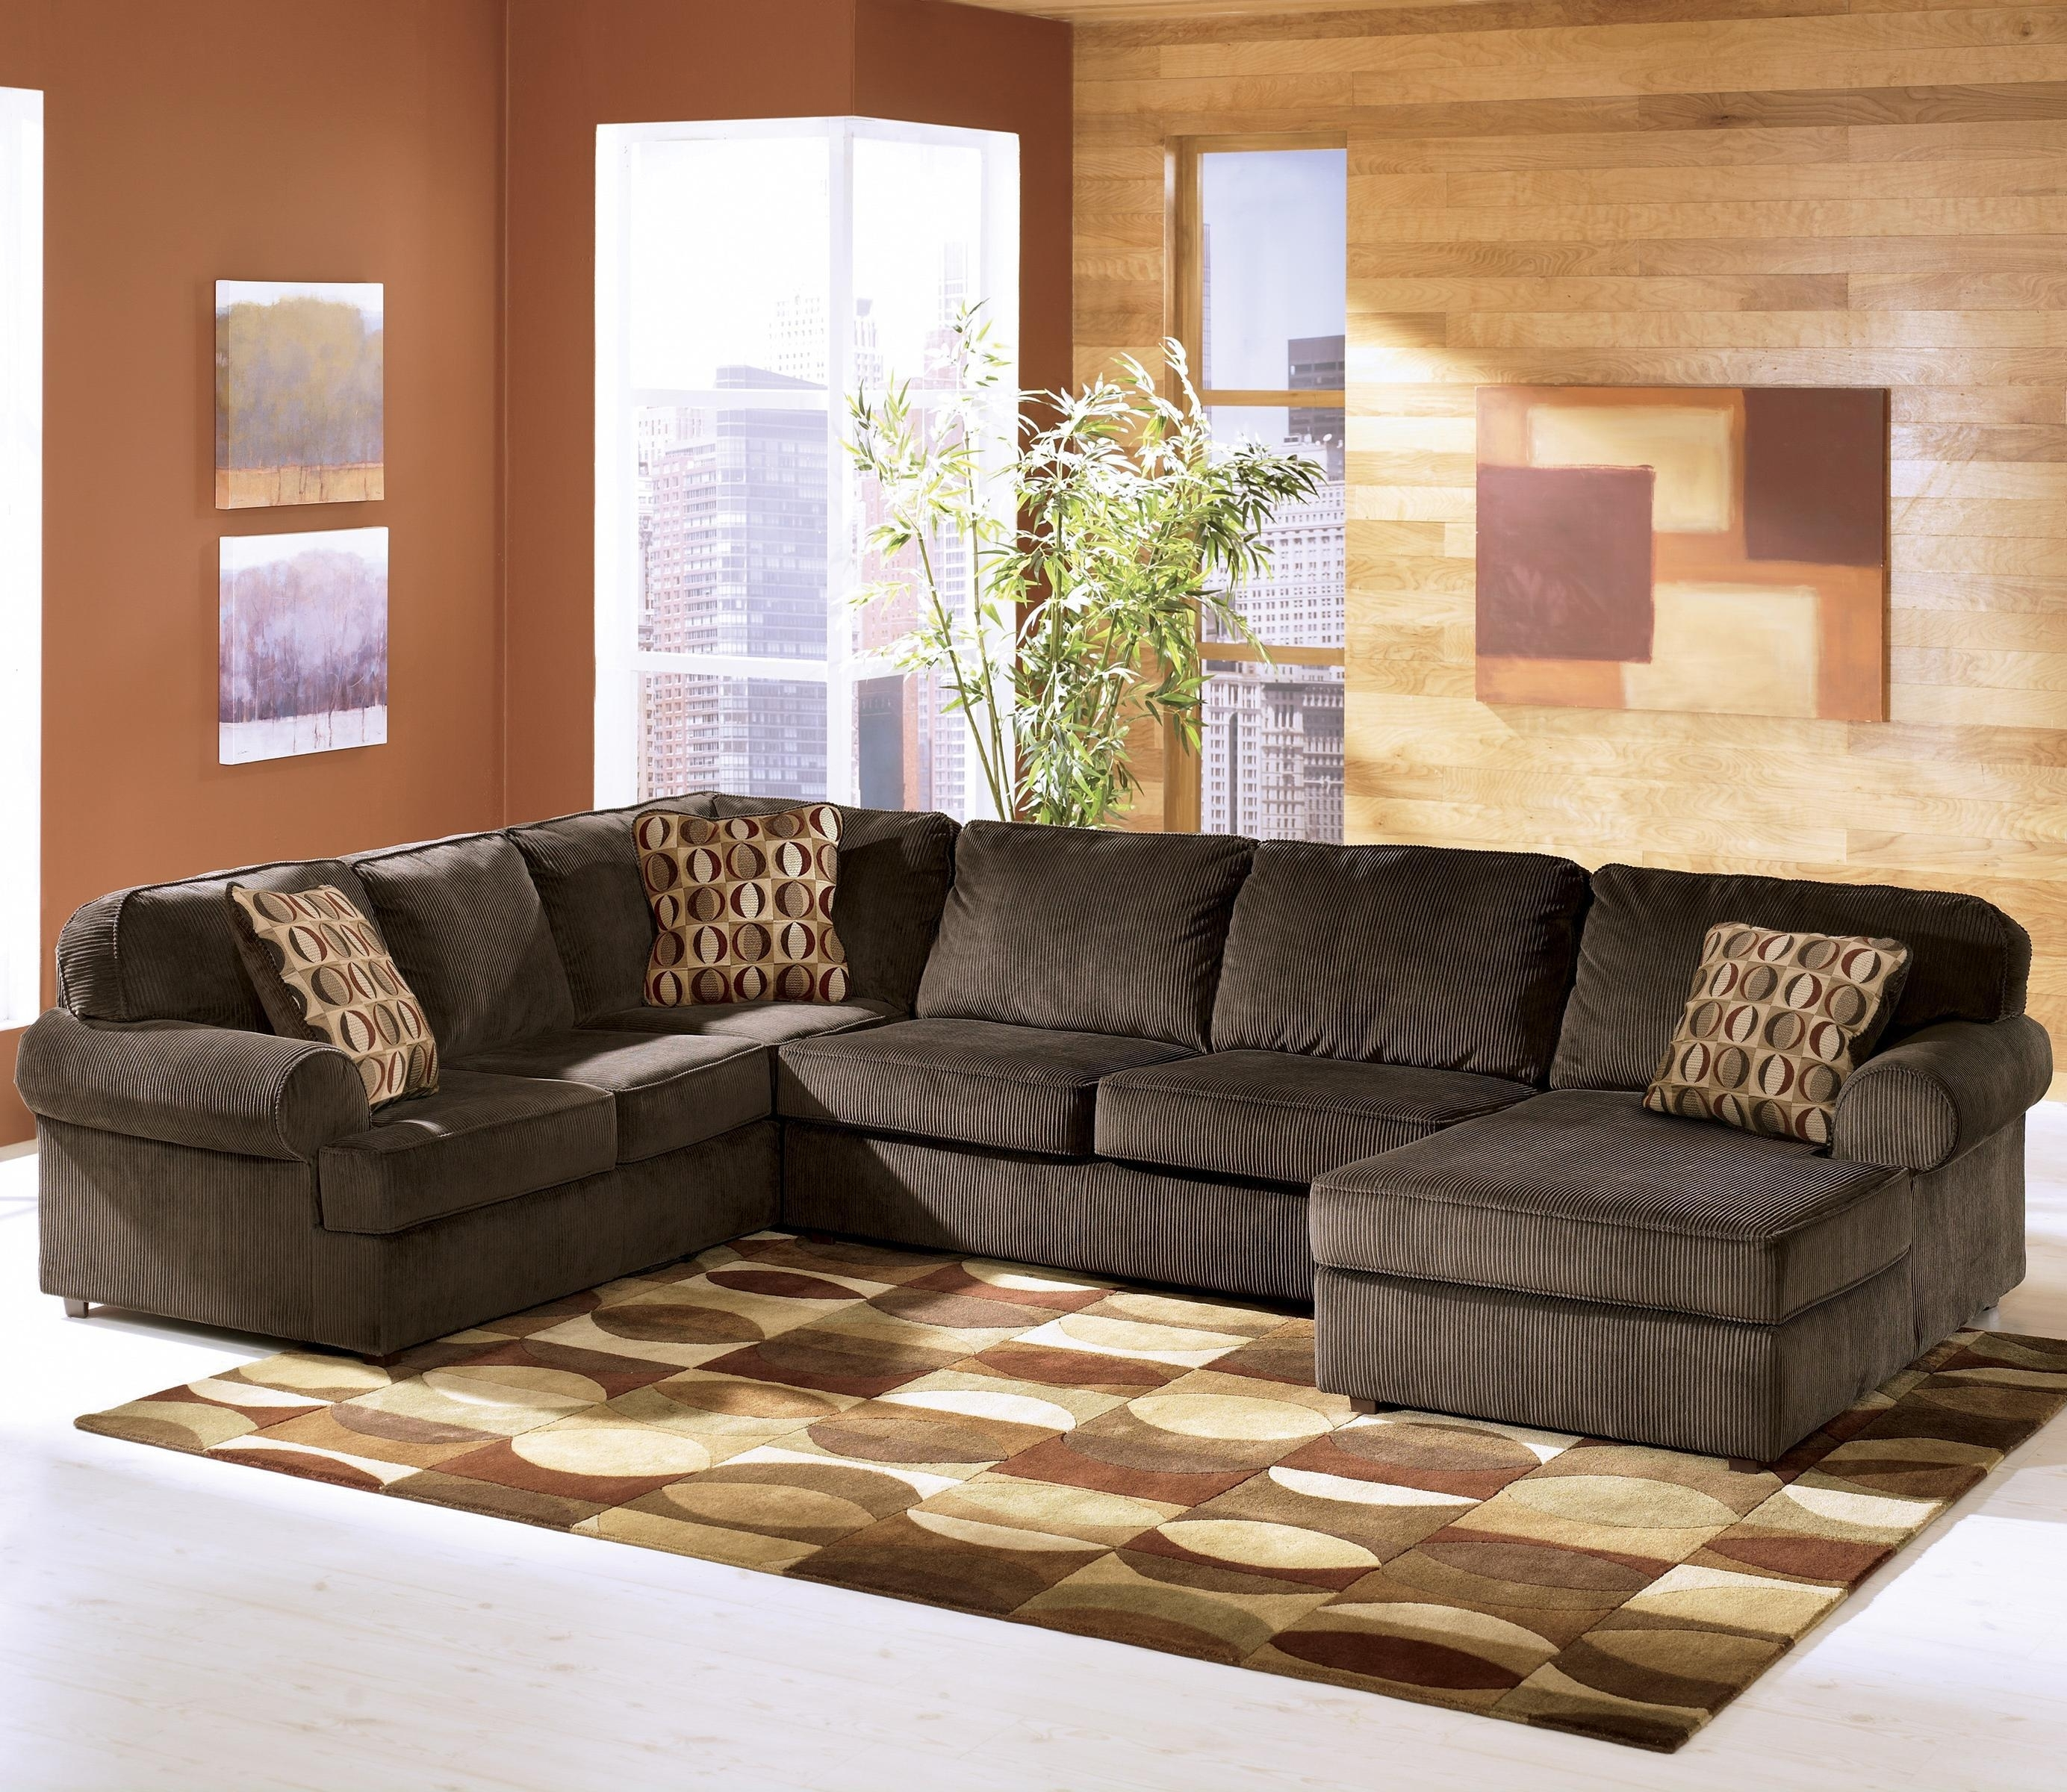 Widely Used Ashley Furniture Chaises In Ashley Furniture Vista – Chocolate Casual 3 Piece Sectional With (View 15 of 15)